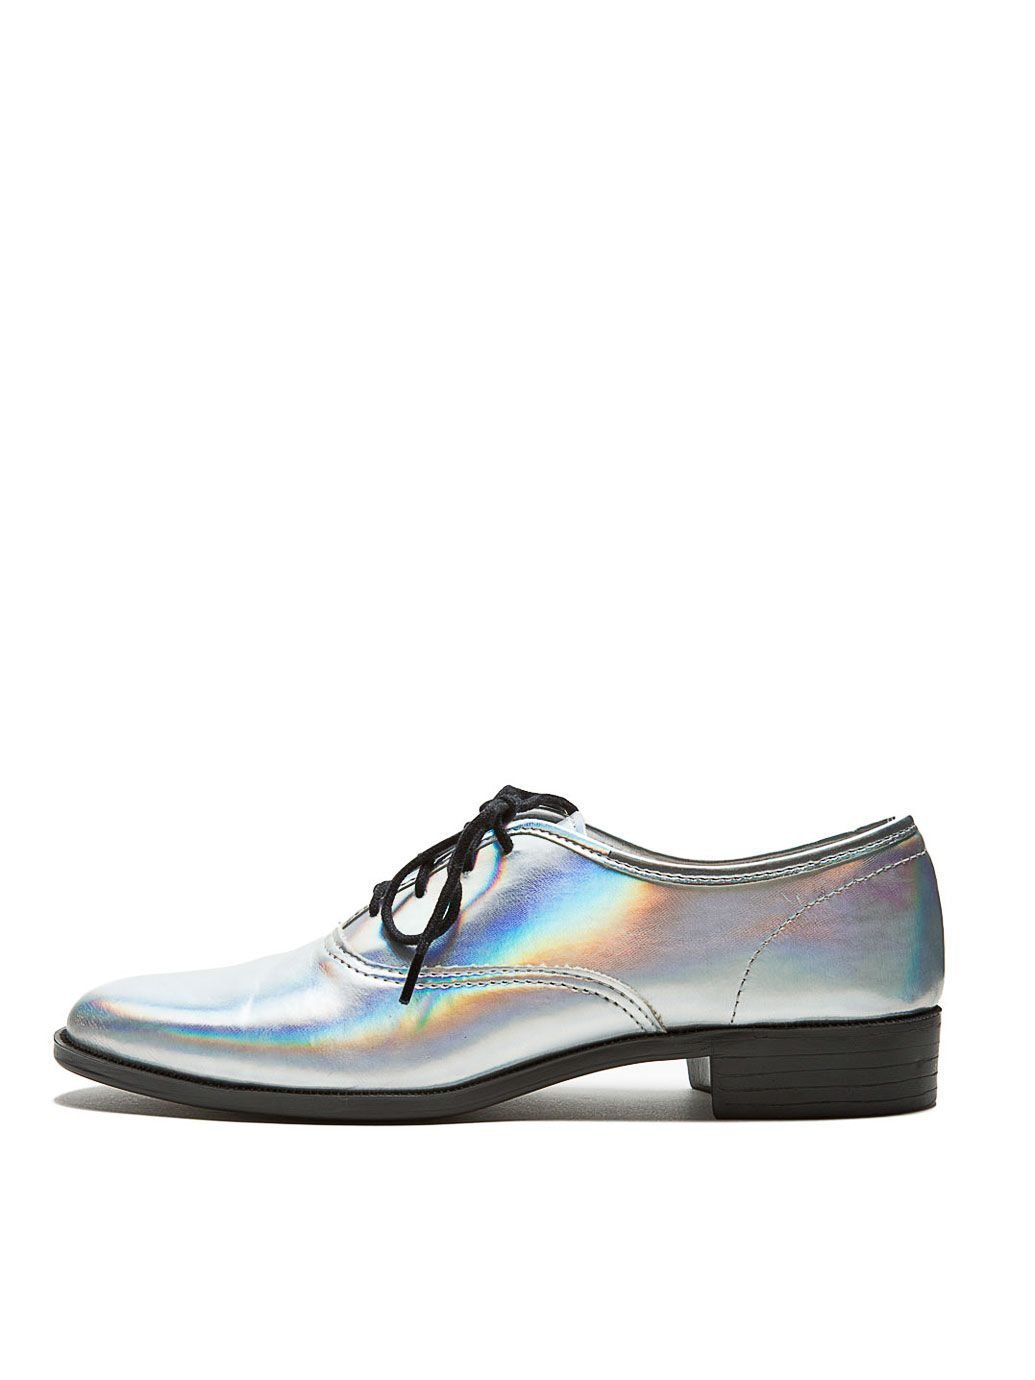 Amazon.com: american apparel women's metallic dancing shoe